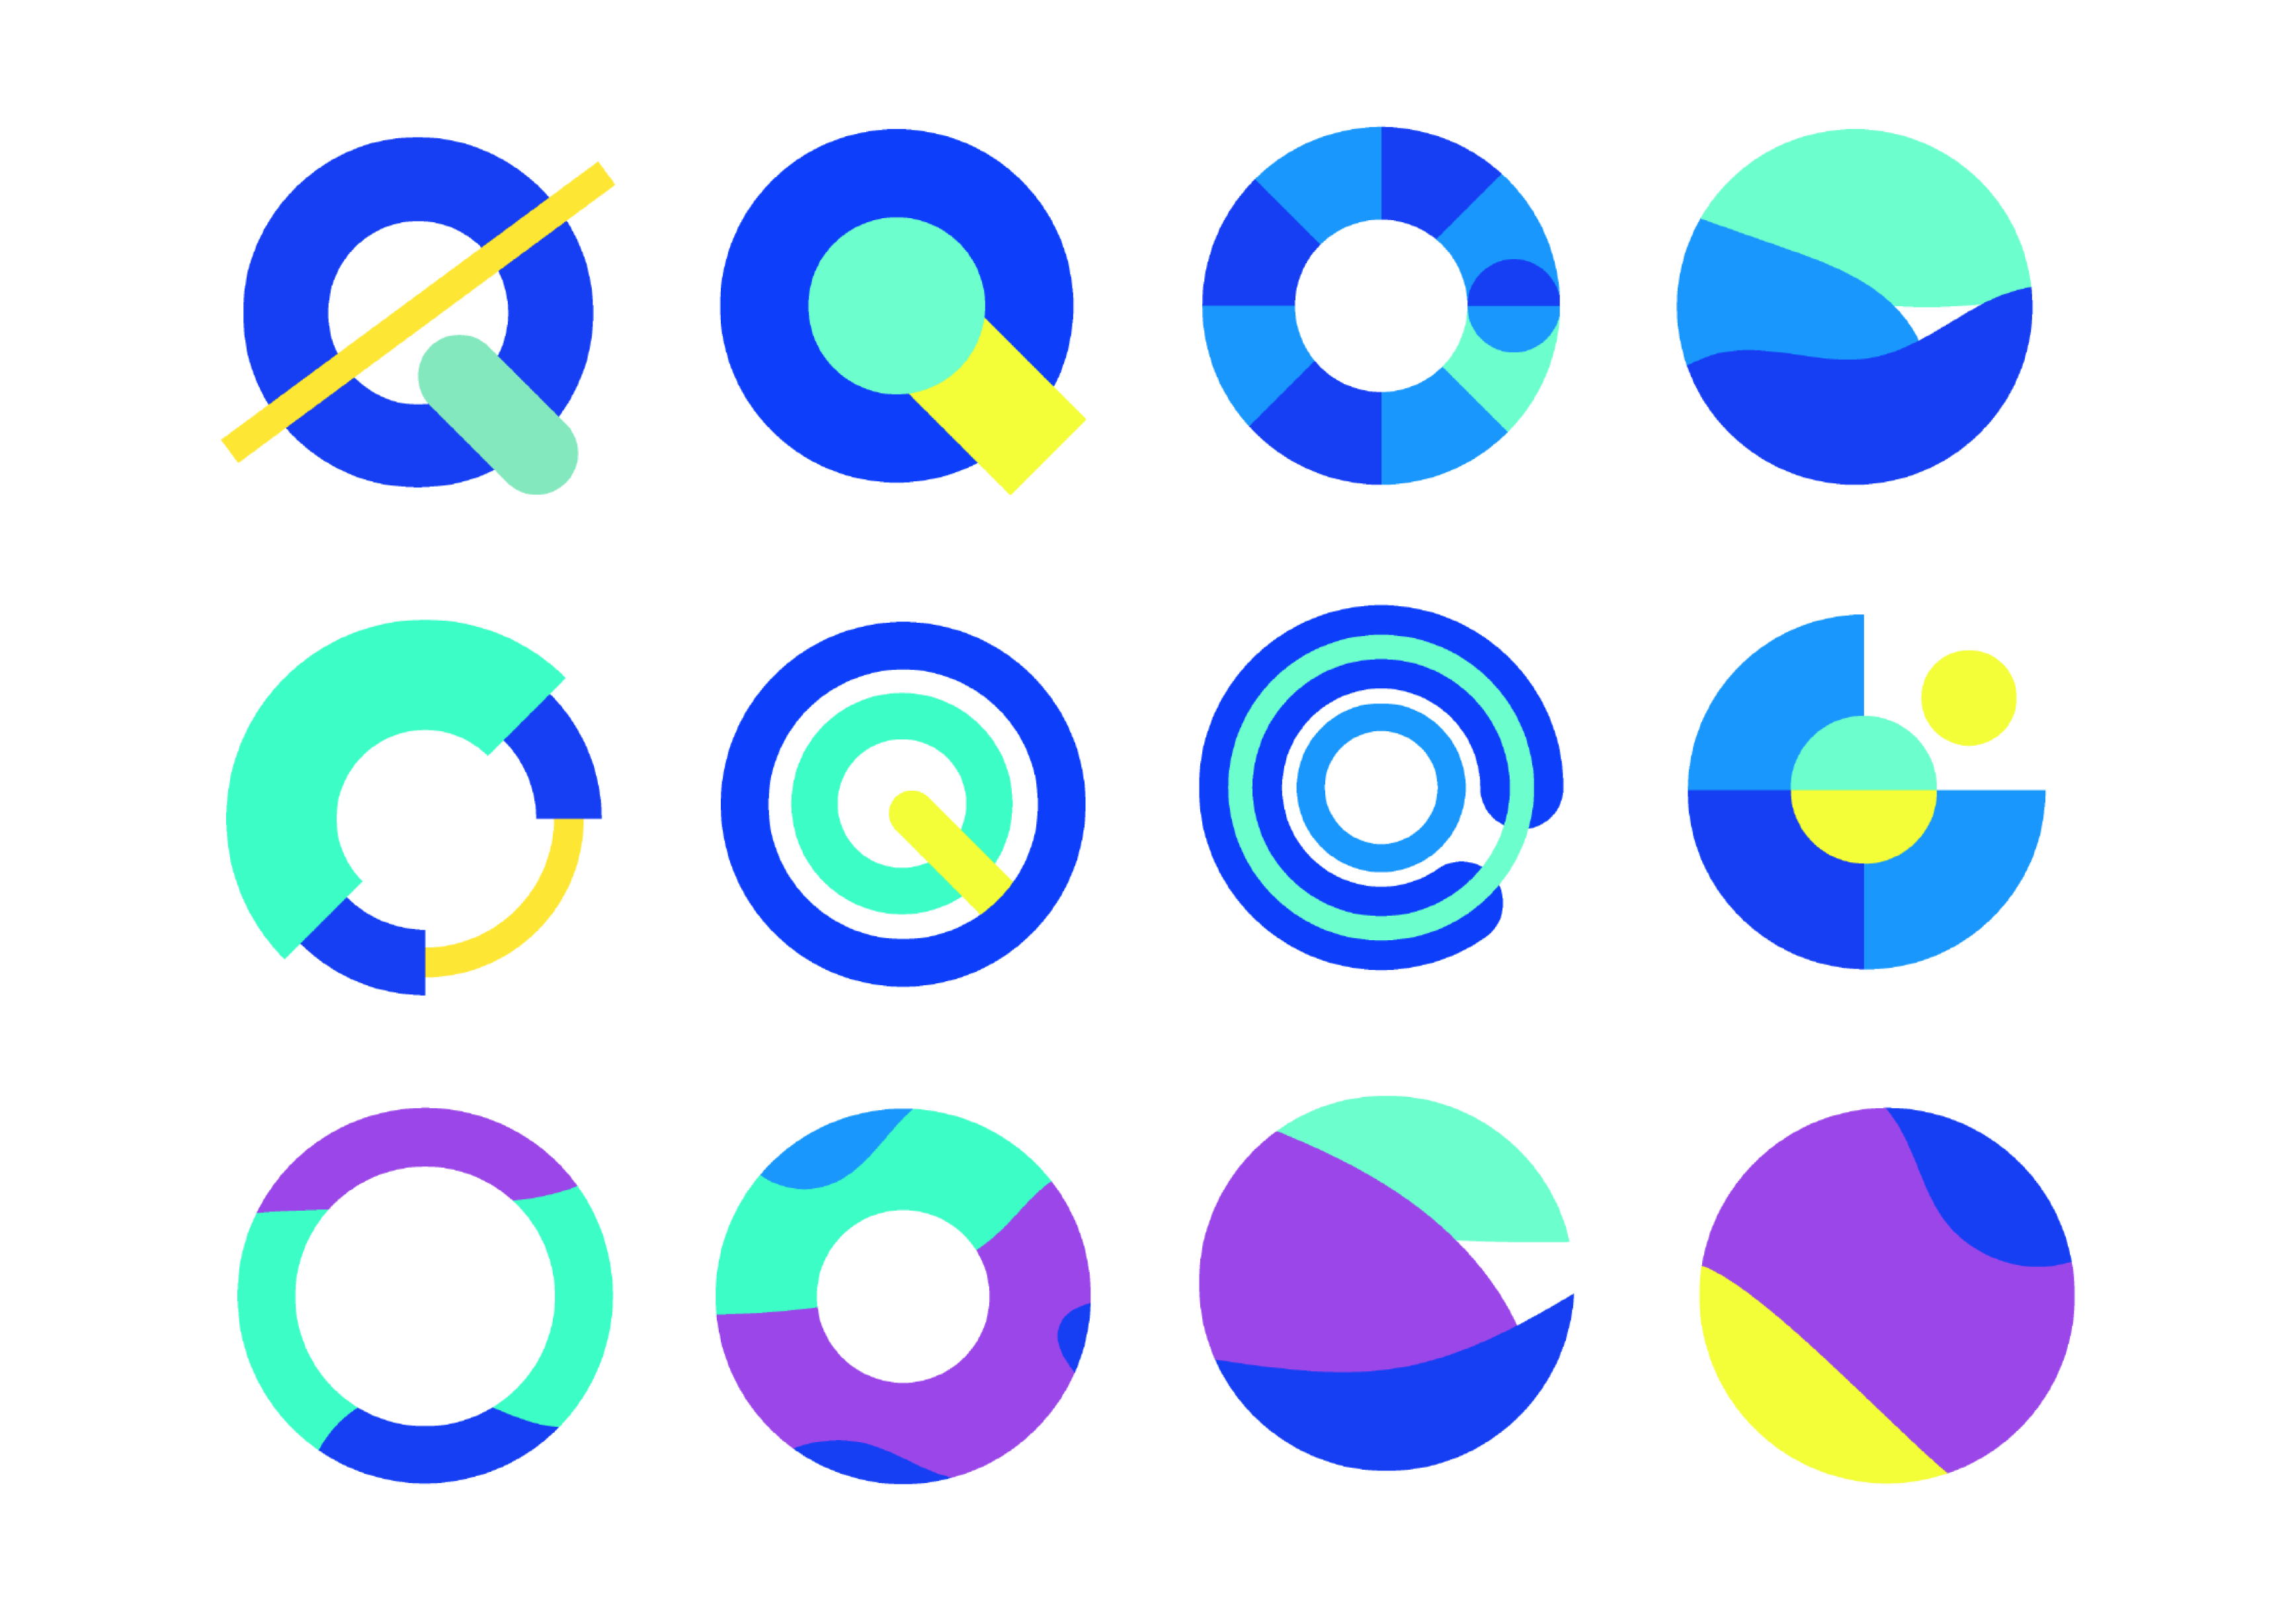 Different variations of circles, budgeting data and the letter Q with different colors.